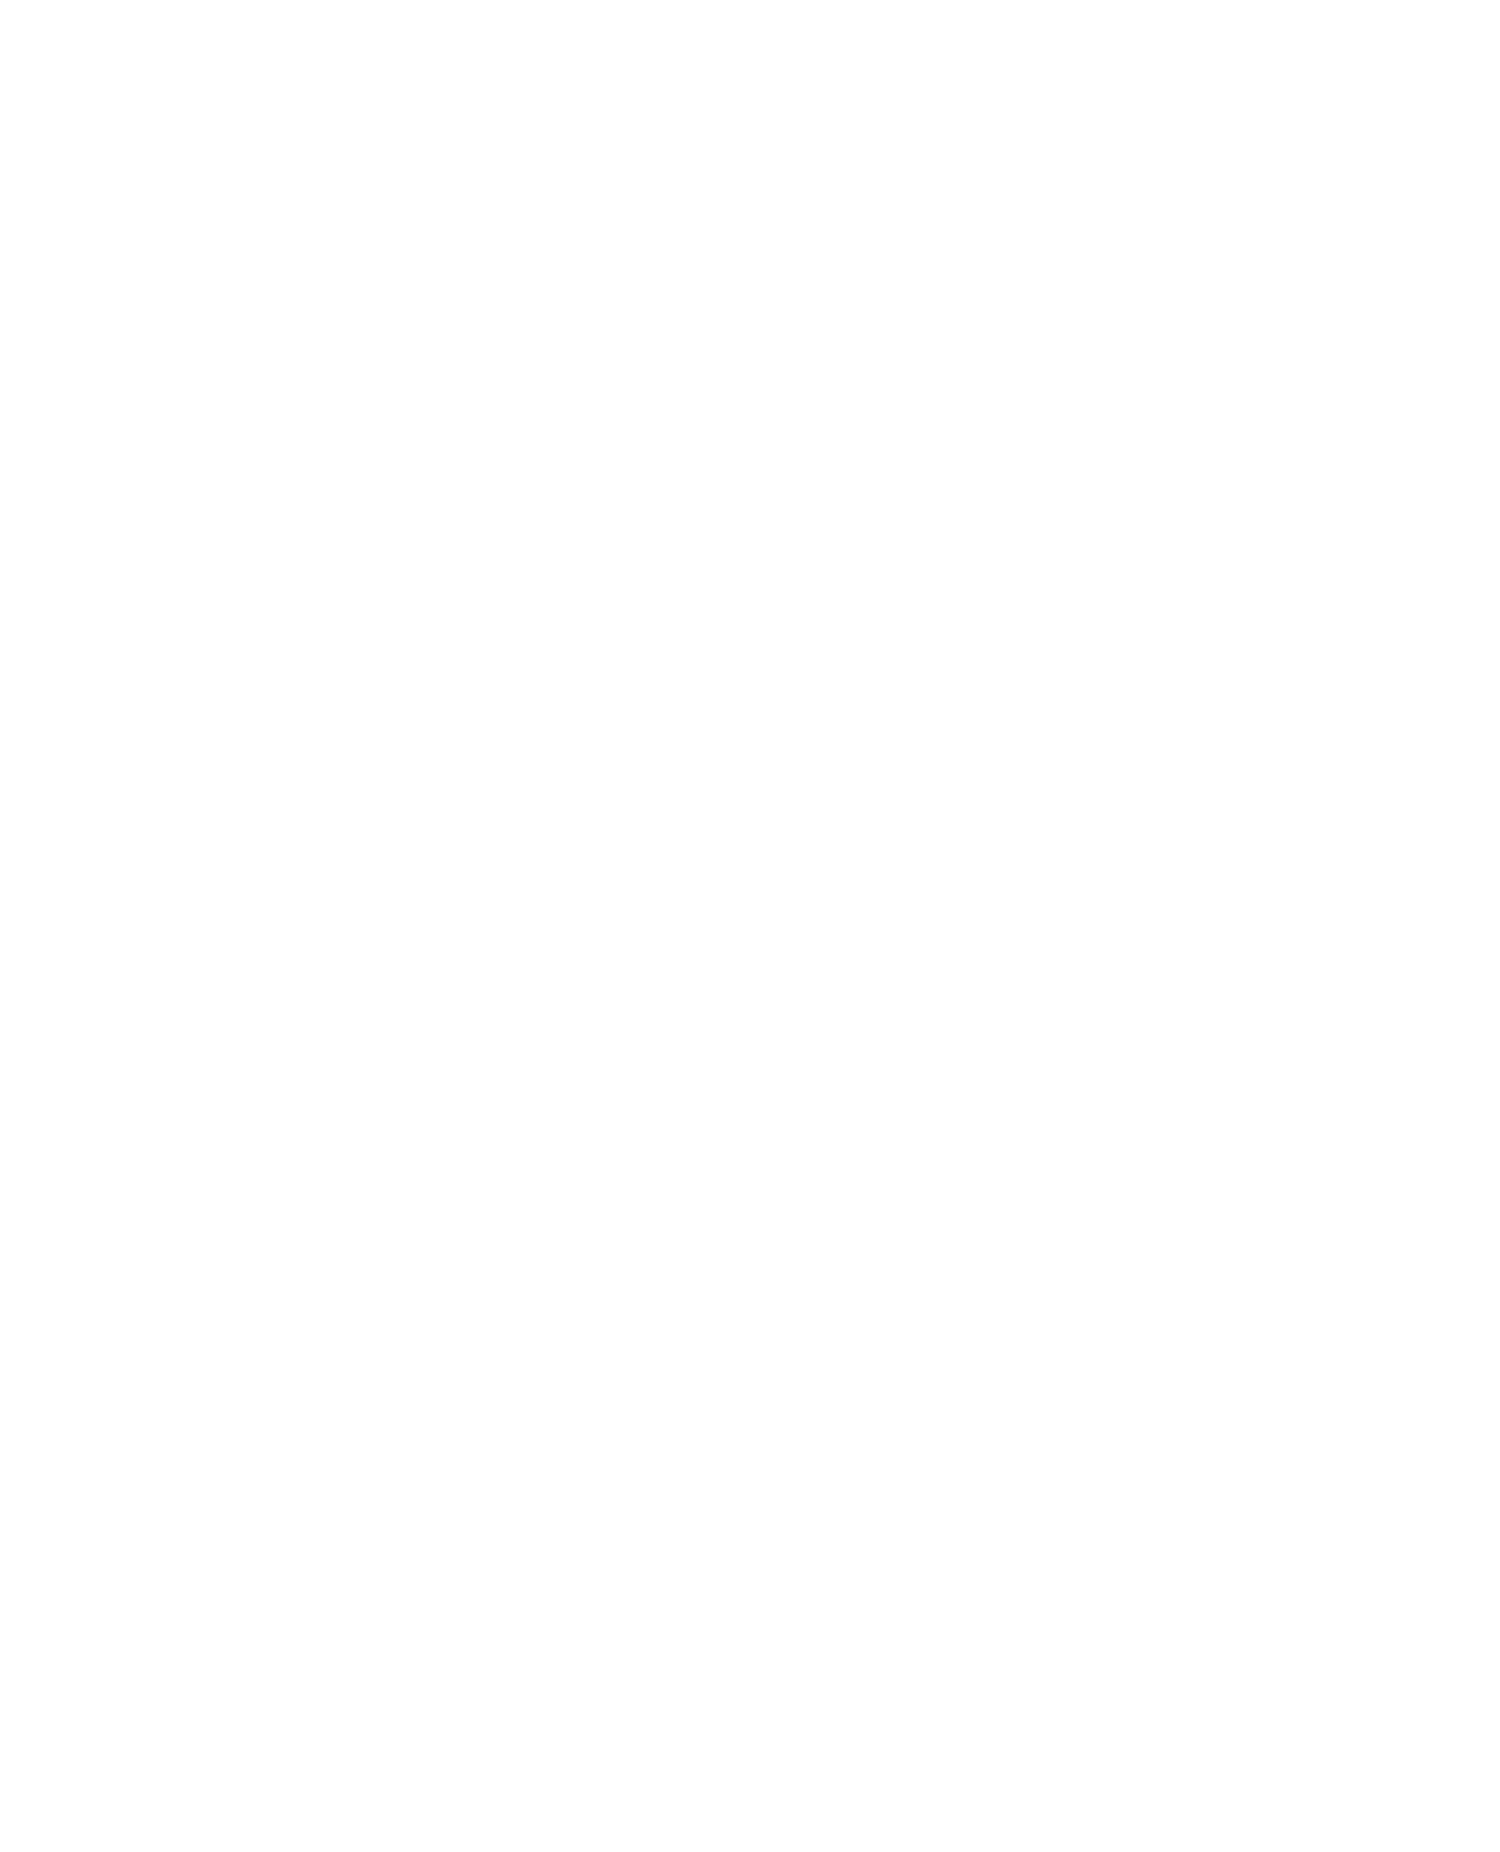 The Whisky Trip